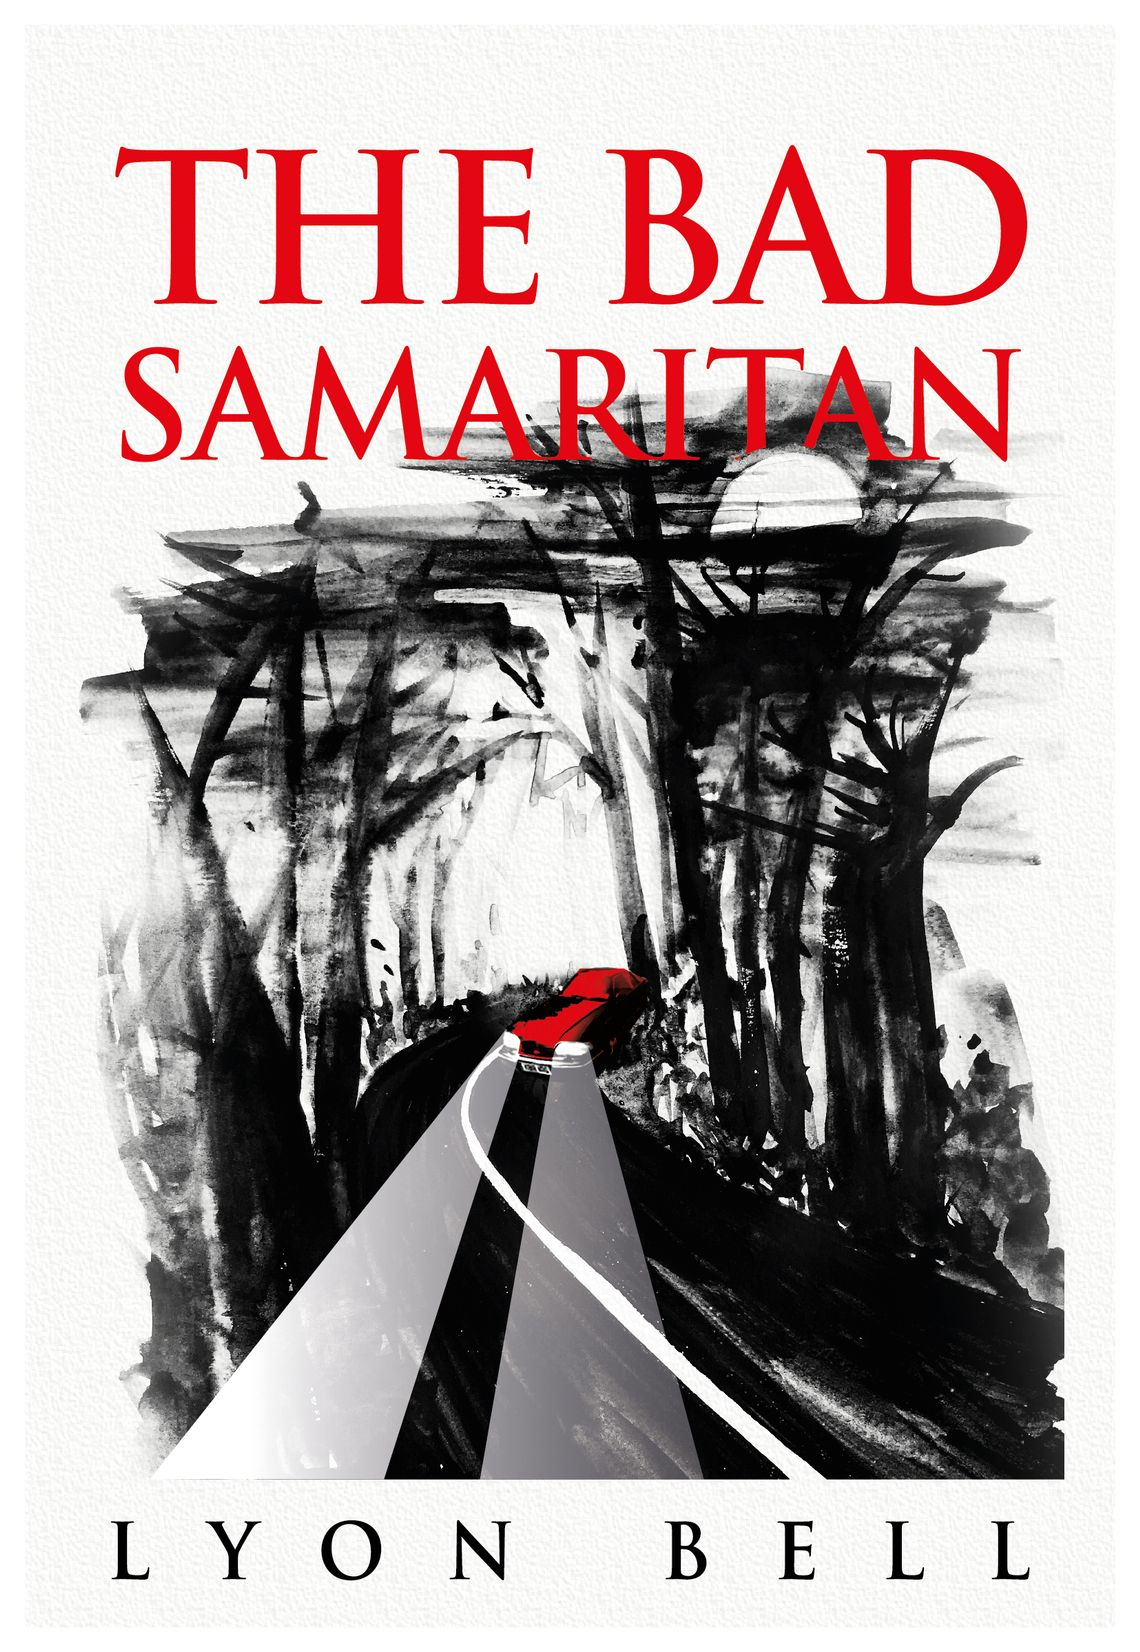 New book: 'The Bad Samaritan' by Lyon Bell